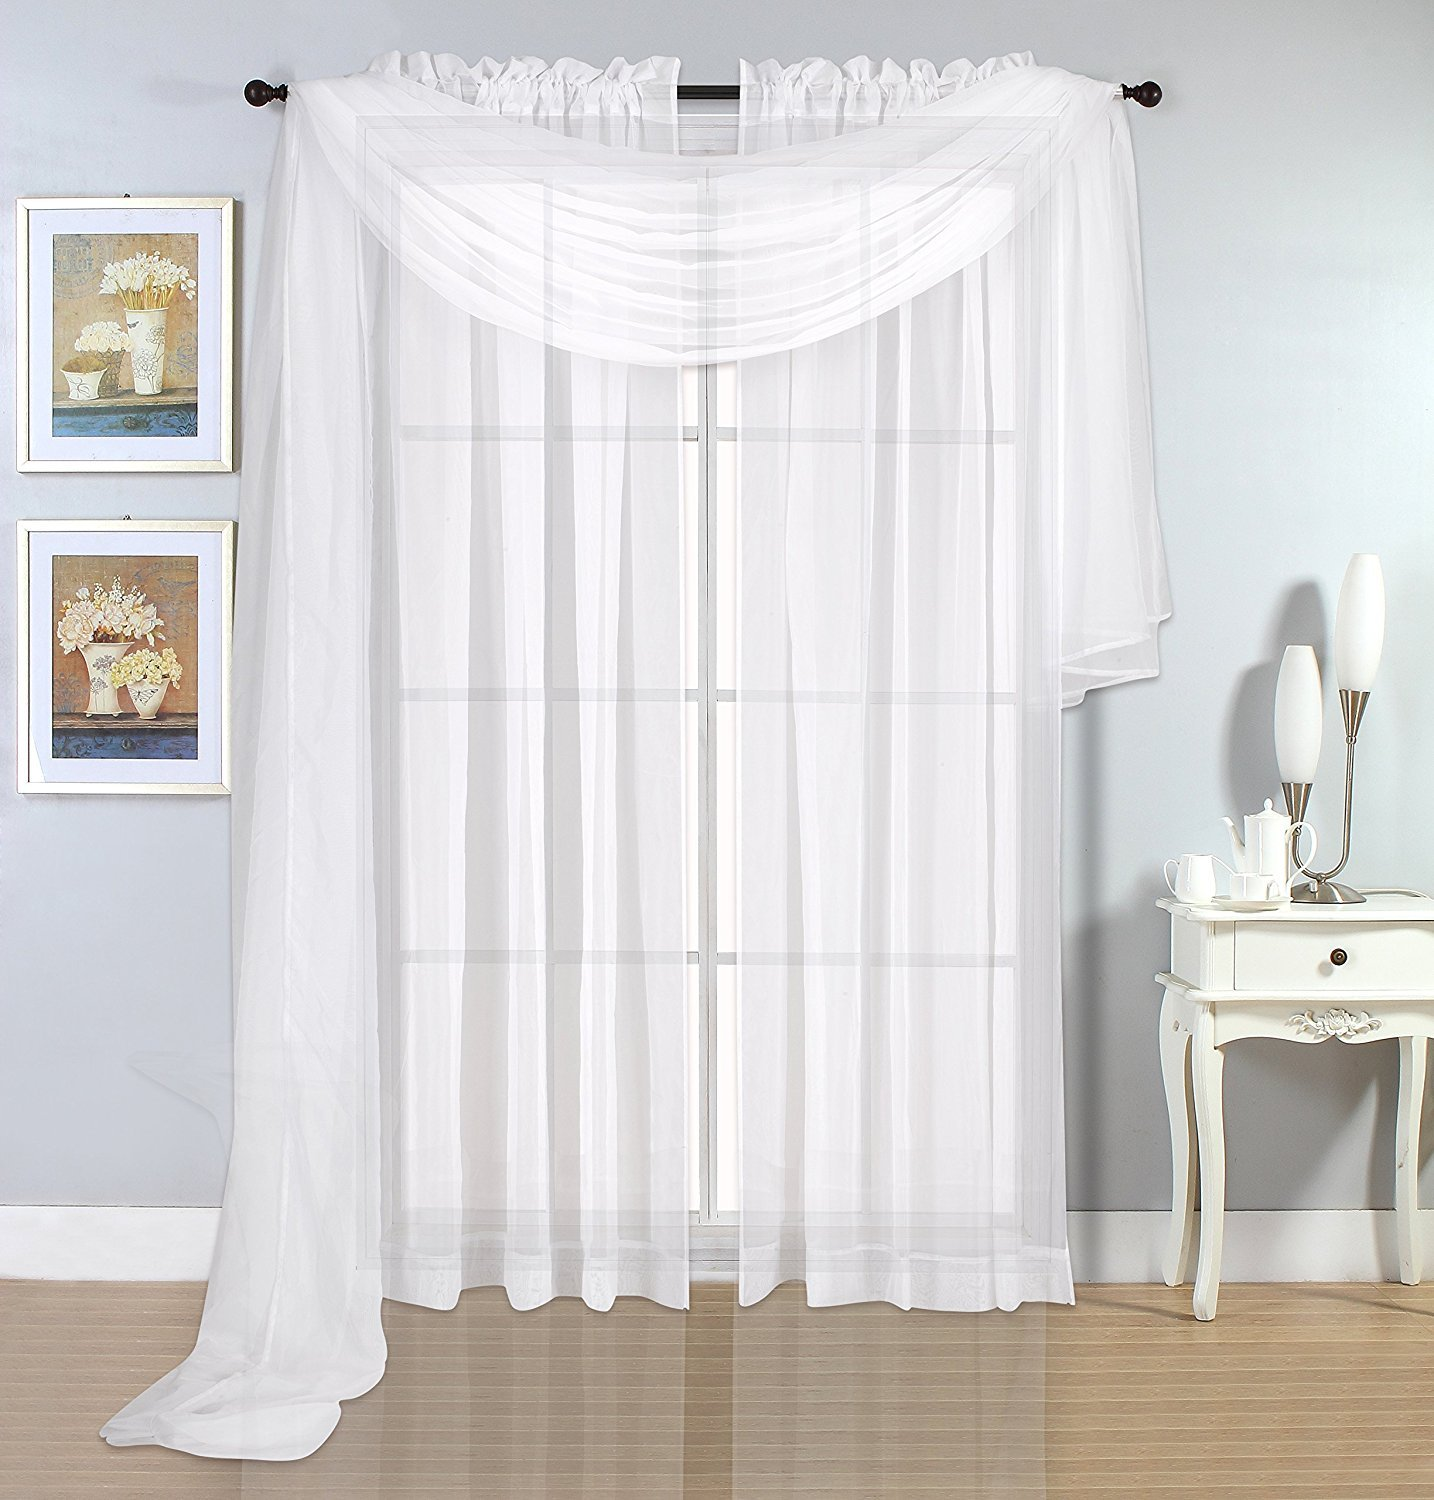 White Sheer Scarves - Sheer Curtains - White Luxurious